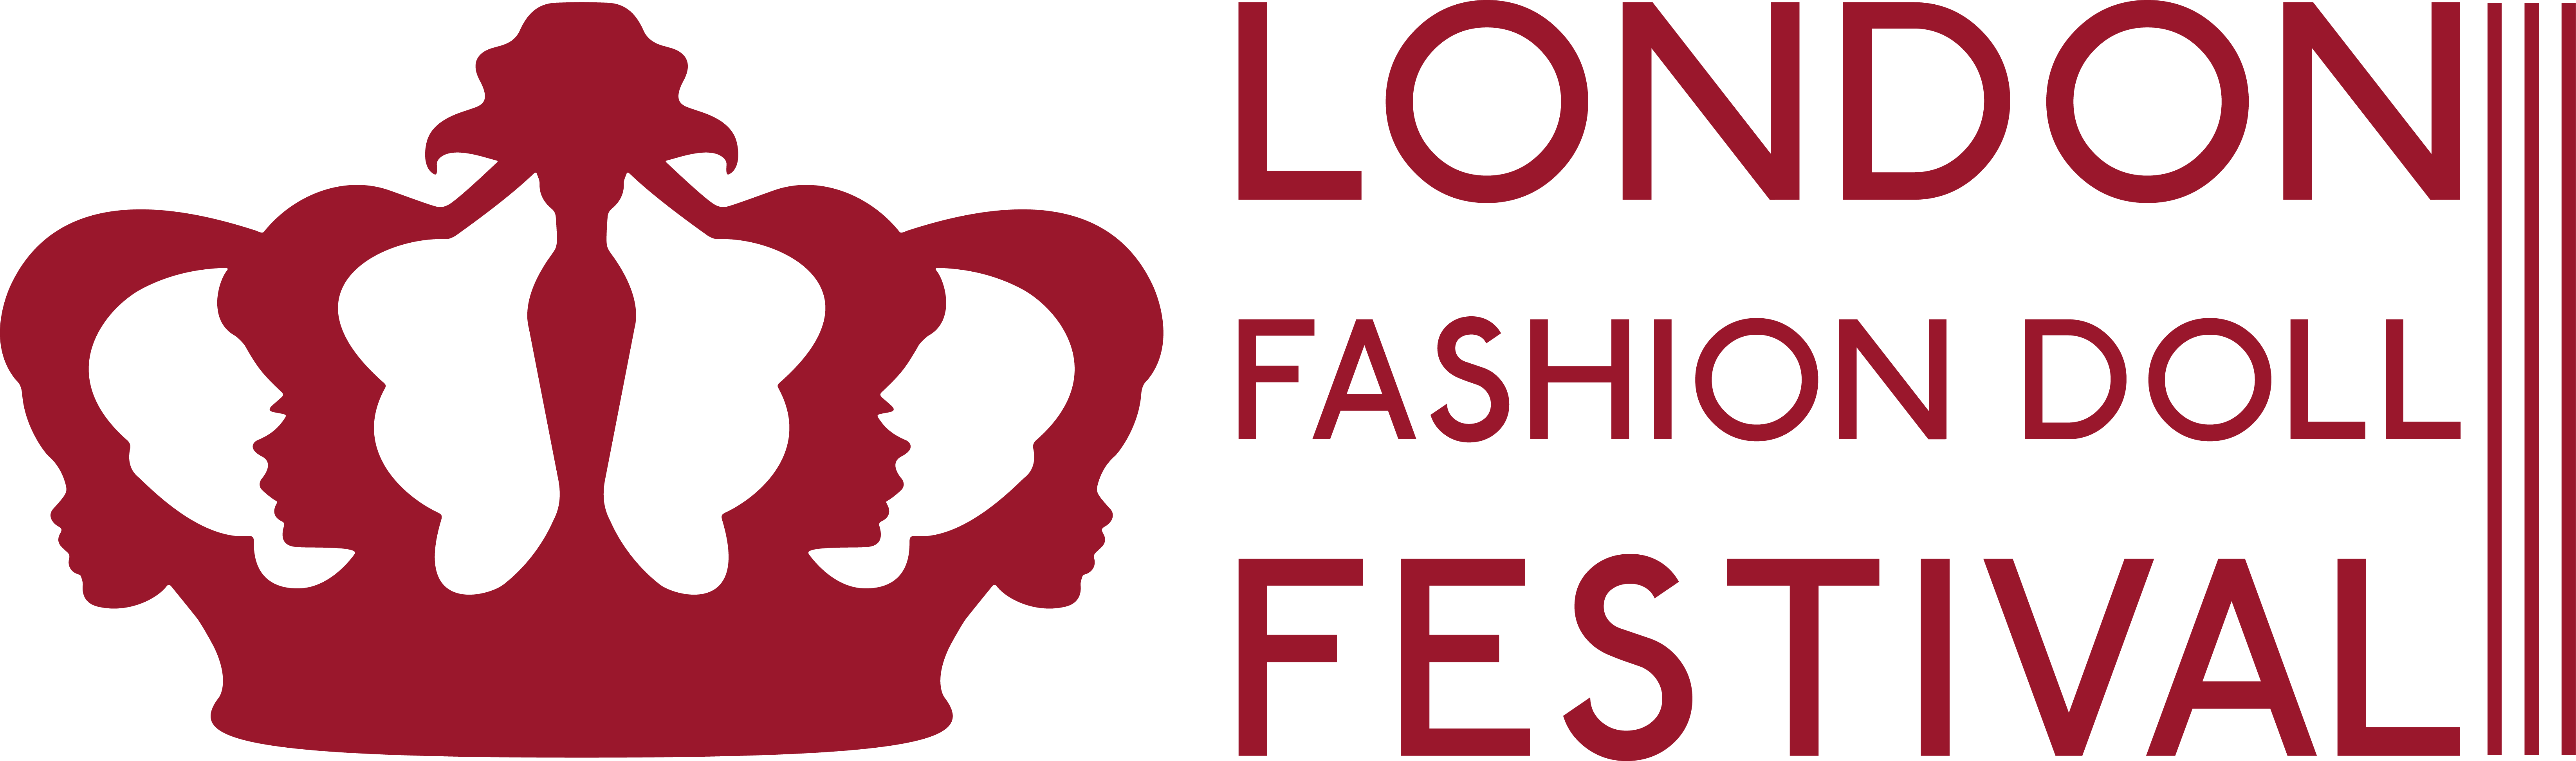 London Fashion Doll Festival